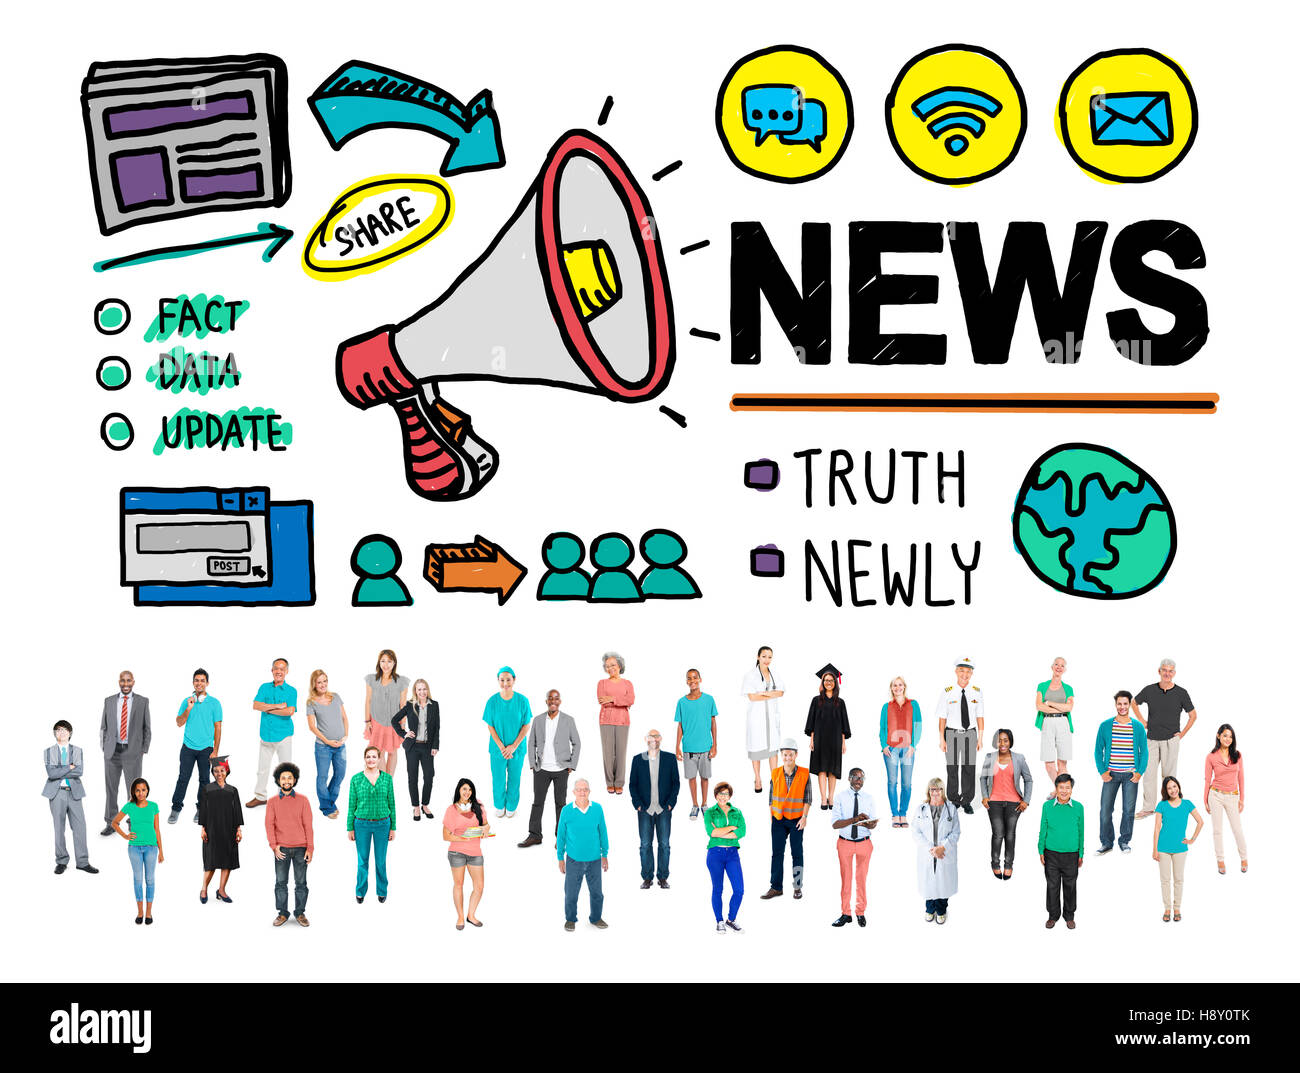 News Broadcast Information Media Publication Concept - Stock Image